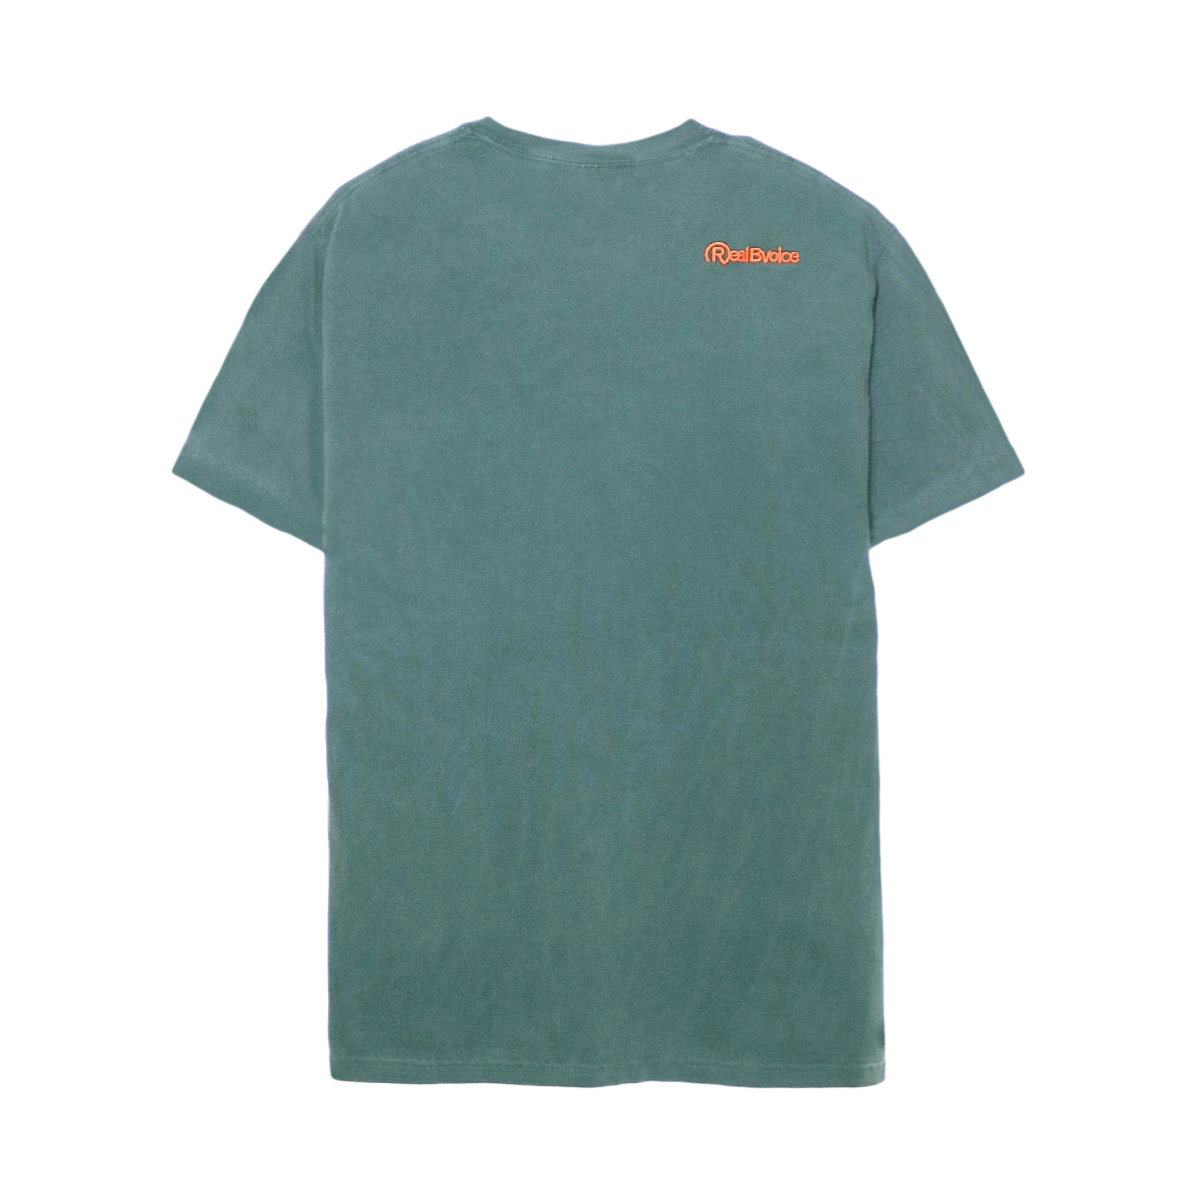 BUFFALO GARMENT DYED T-SHIRT